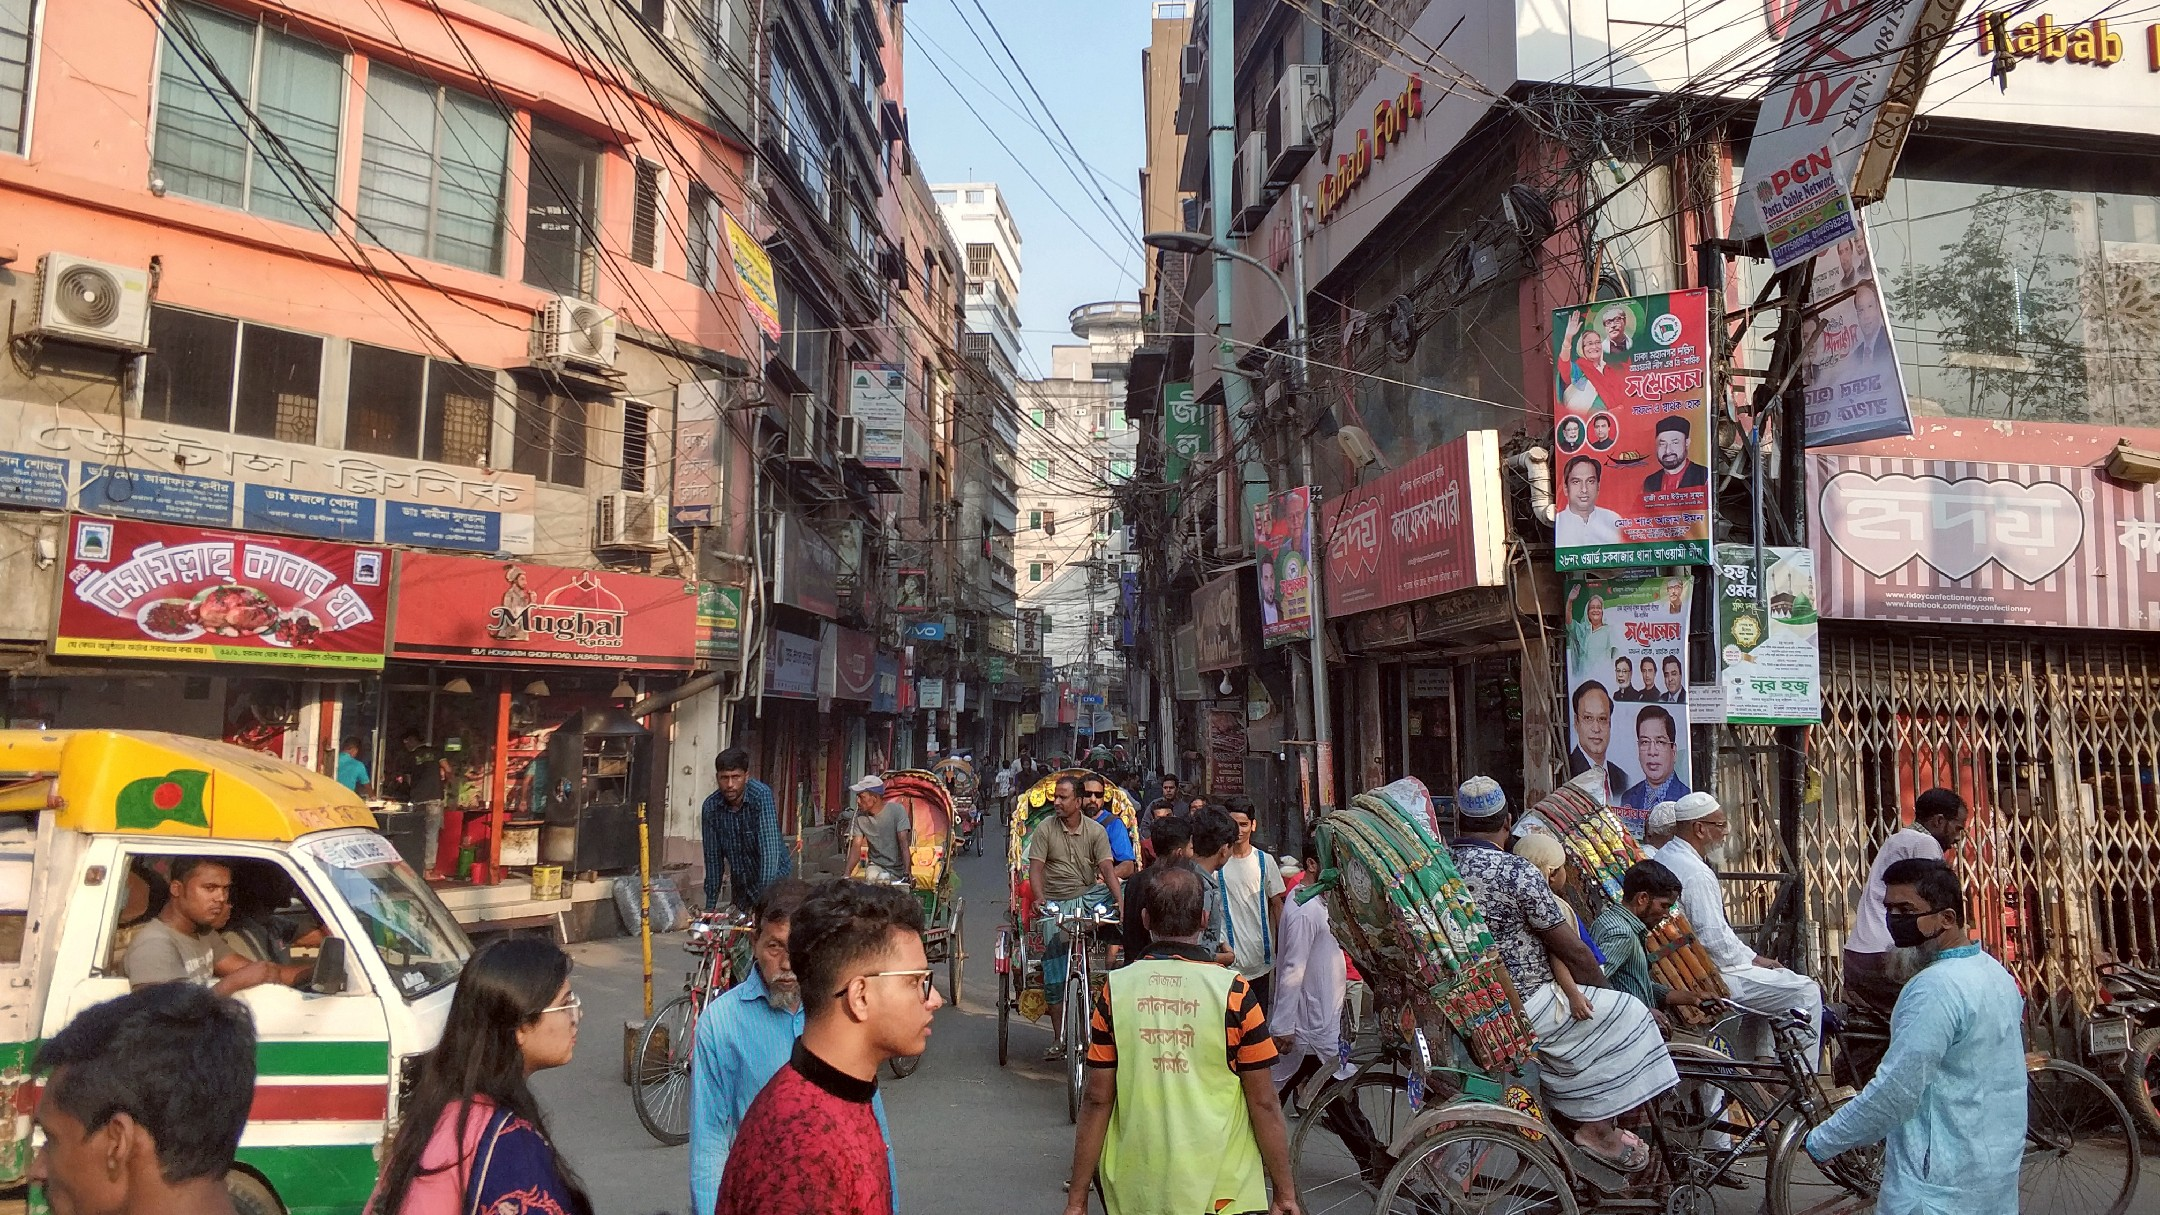 busy intersection in Old Town Dhaka